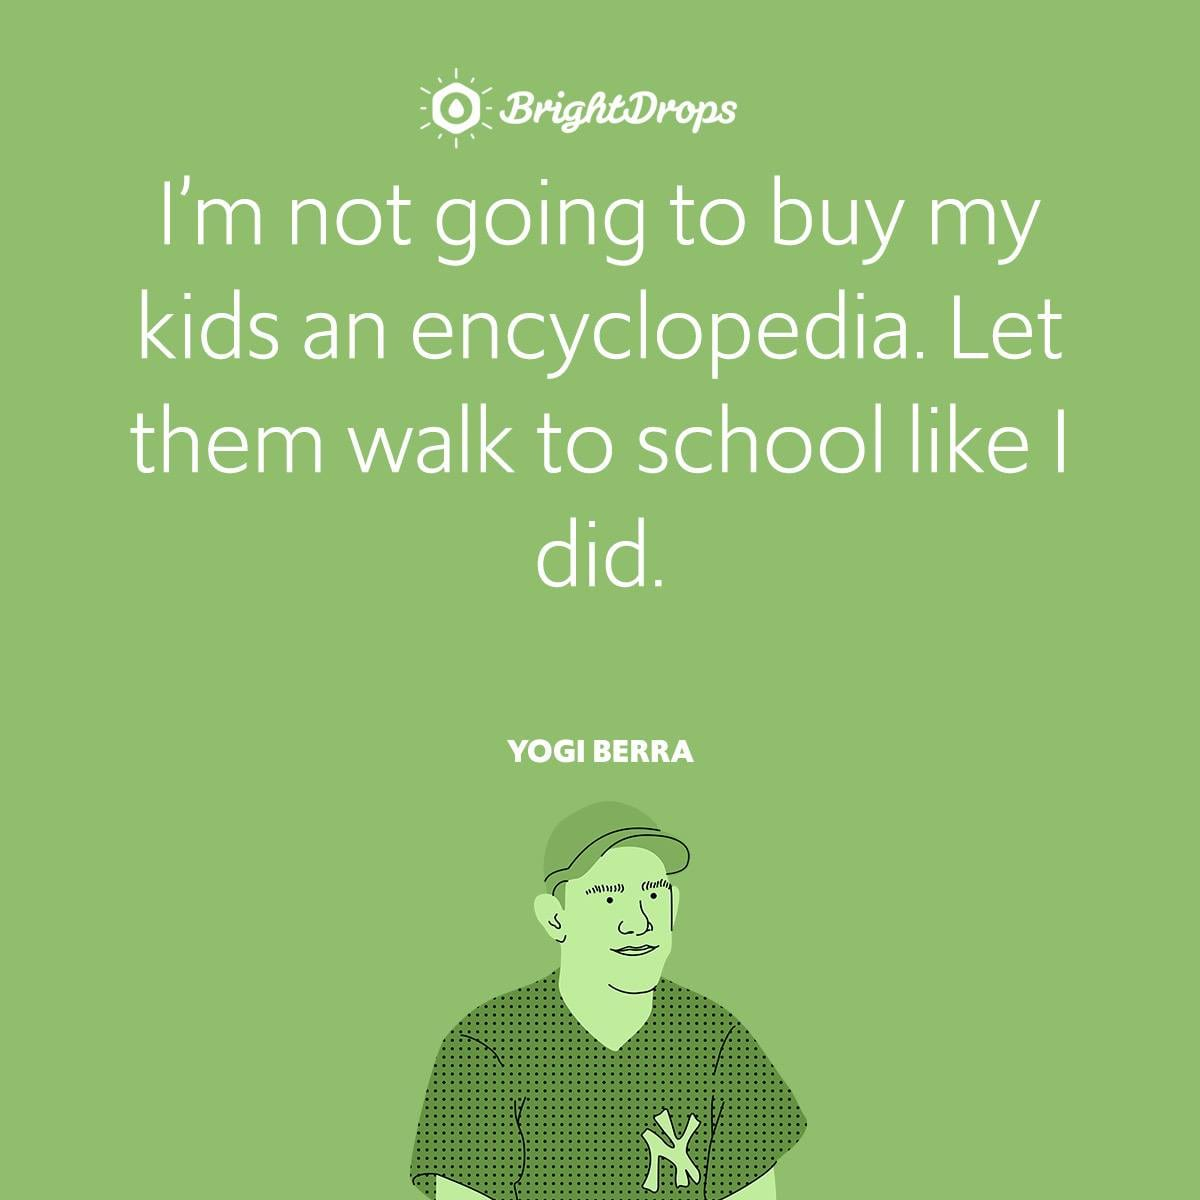 I'm not going to buy my kids an encyclopedia. Let them walk to school like I did.